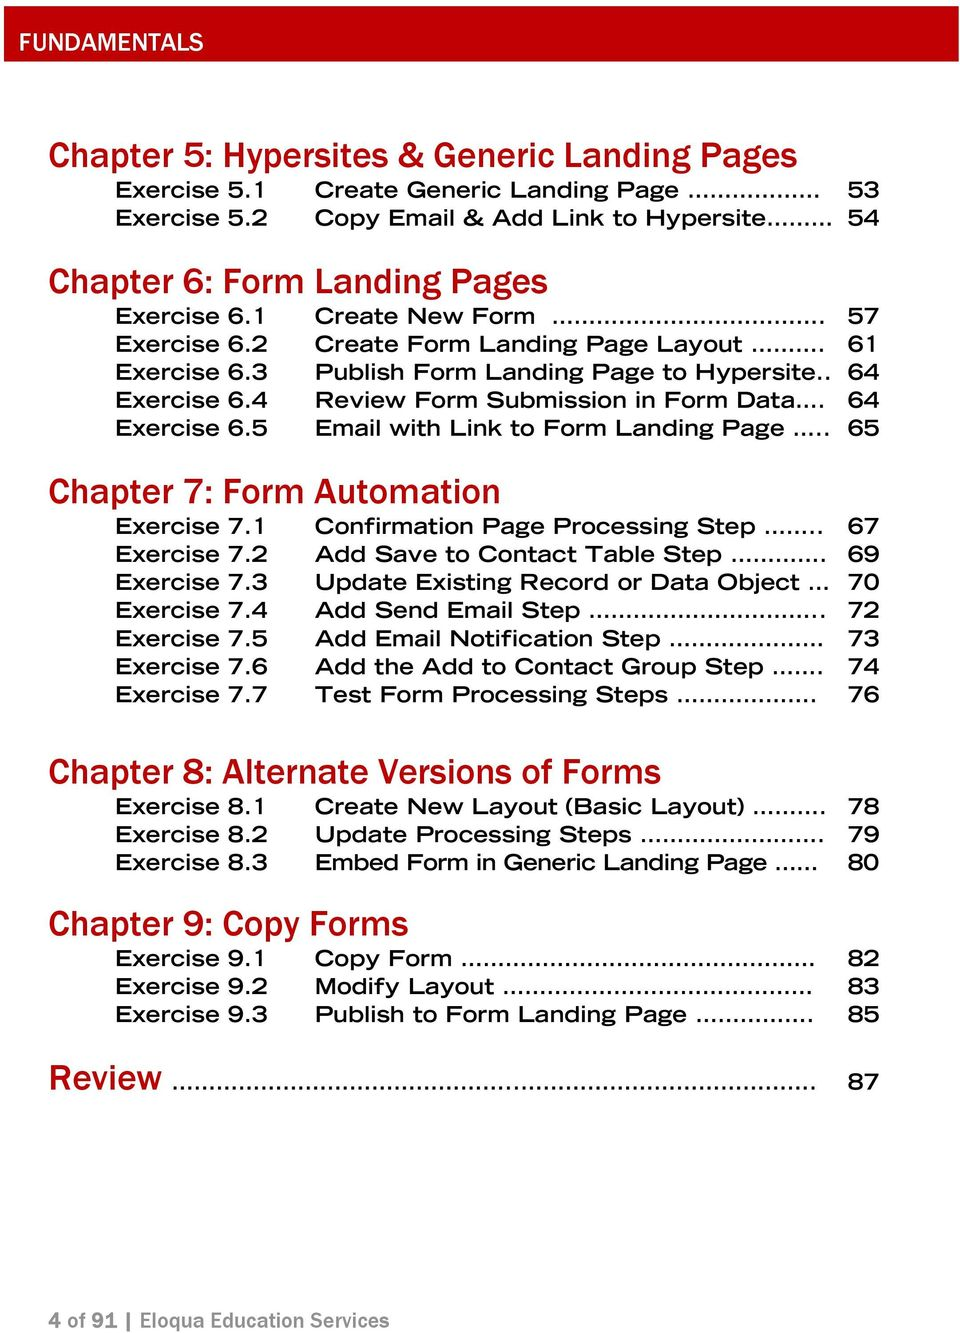 . 65 Chapter 7: Form Automation Exercise 7.1 Confirmation Page Processing Step.. 67 Exercise 7.2 Add Save to Contact Table Step. 69 Exercise 7.3 Update Existing Record or Data Object 70 Exercise 7.